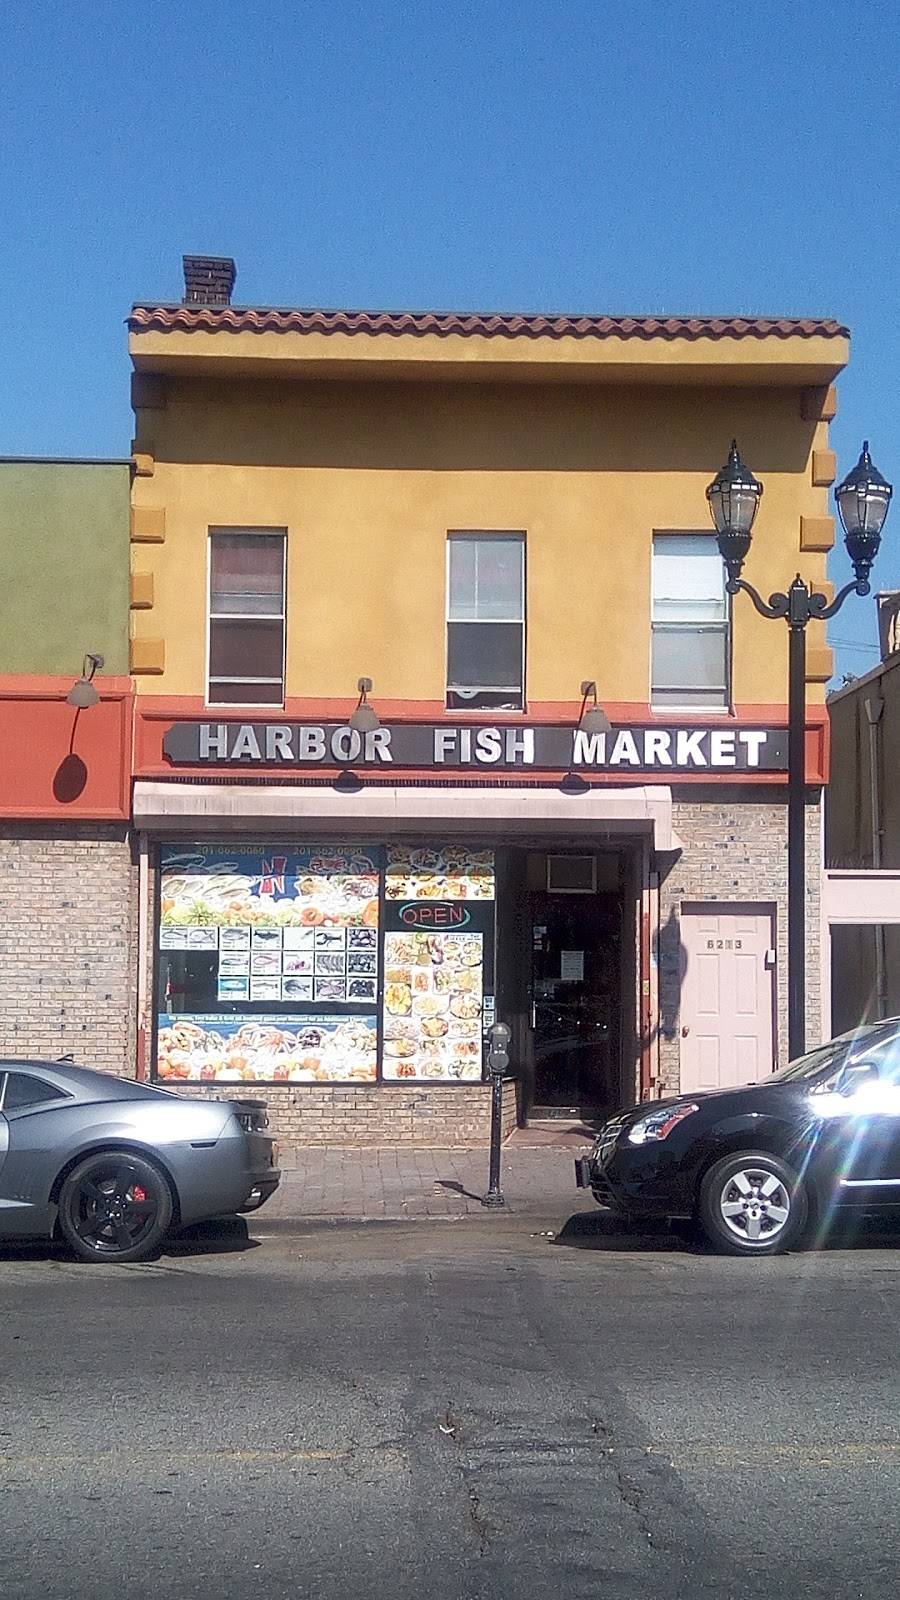 Harbor Fish Market | restaurant | 6213 Bergenline Ave, West New York, NJ 07093, USA | 2016620090 OR +1 201-662-0090